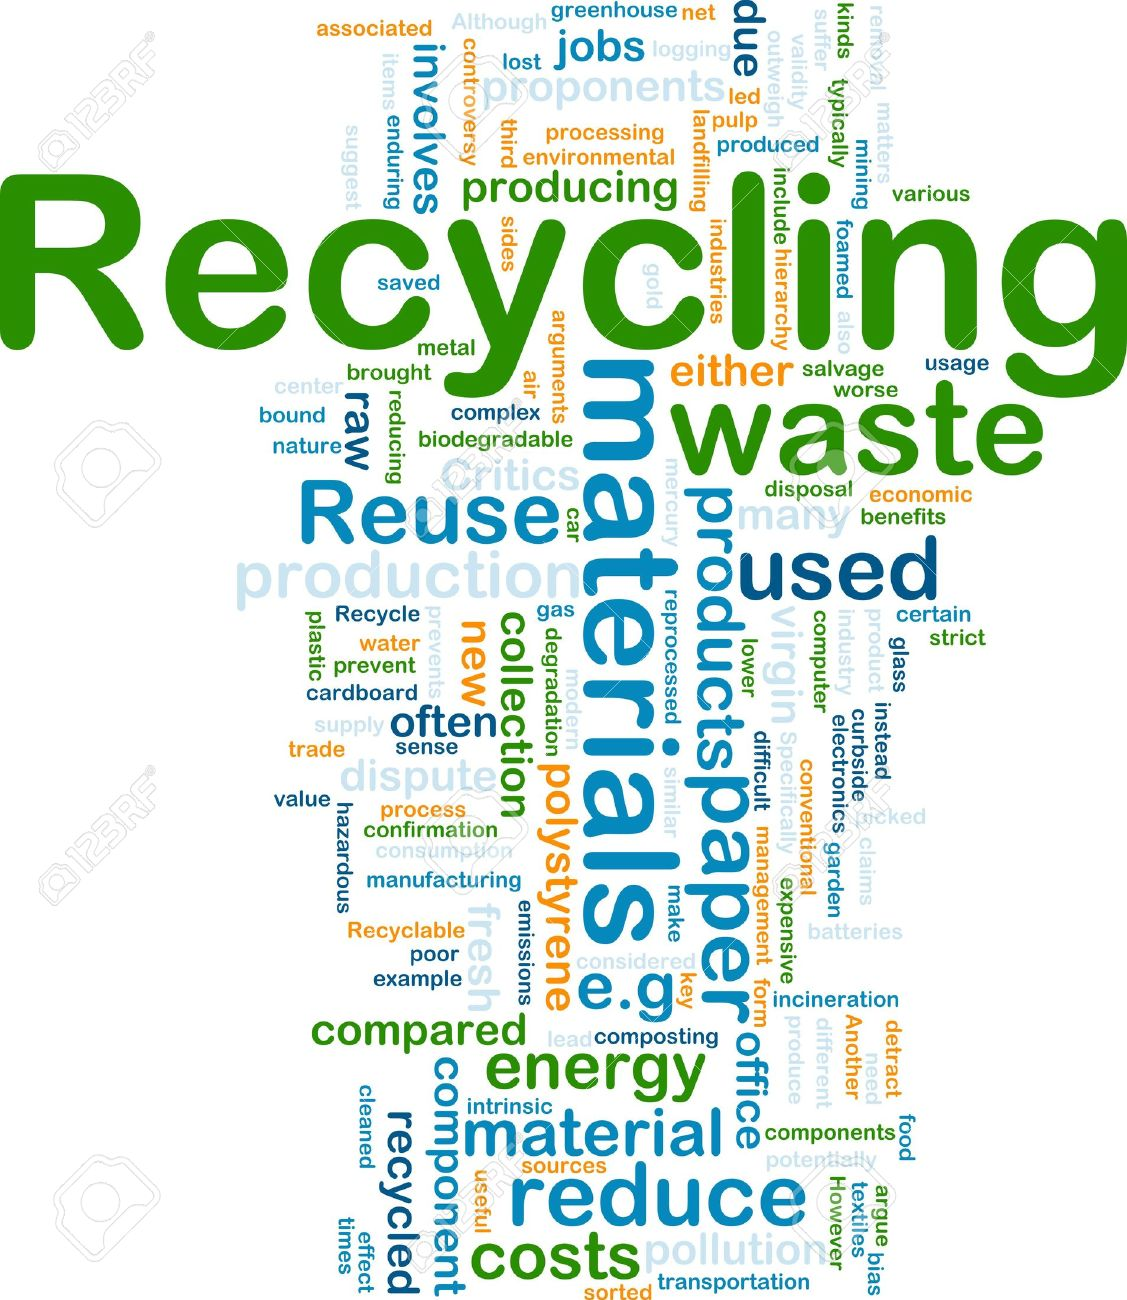 E waste background images - Electronic Waste Background Concept Illustration Of Recycling Waste Materials Stock Photo